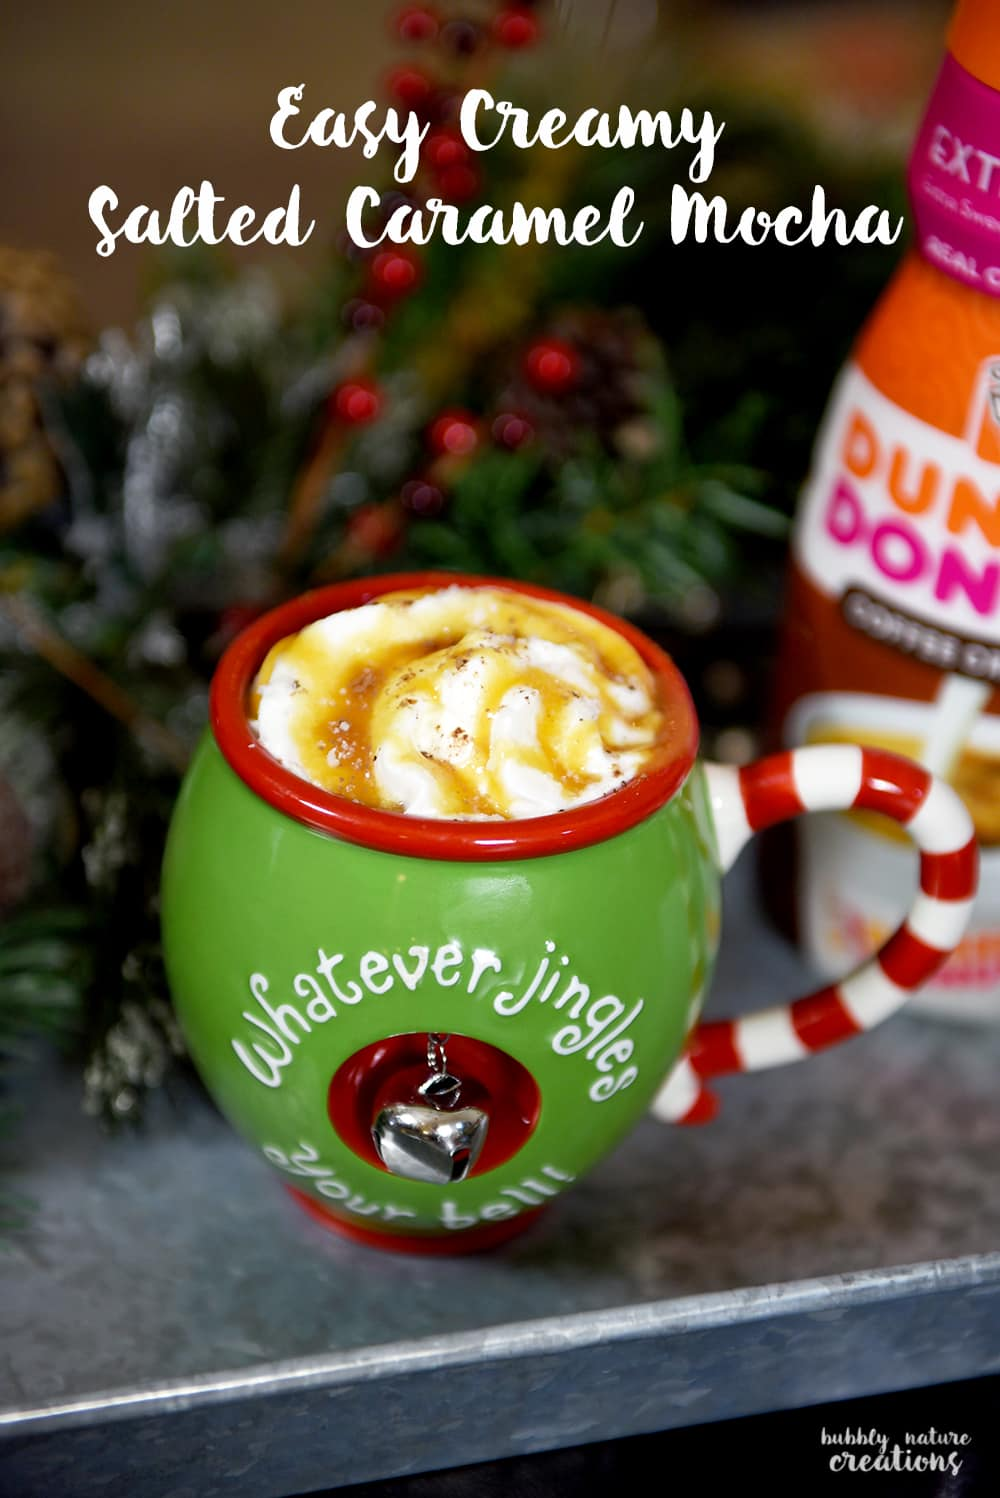 Easy Creamy Salted Caramel Mocha! If you love mochas then this easy at home version is for you!